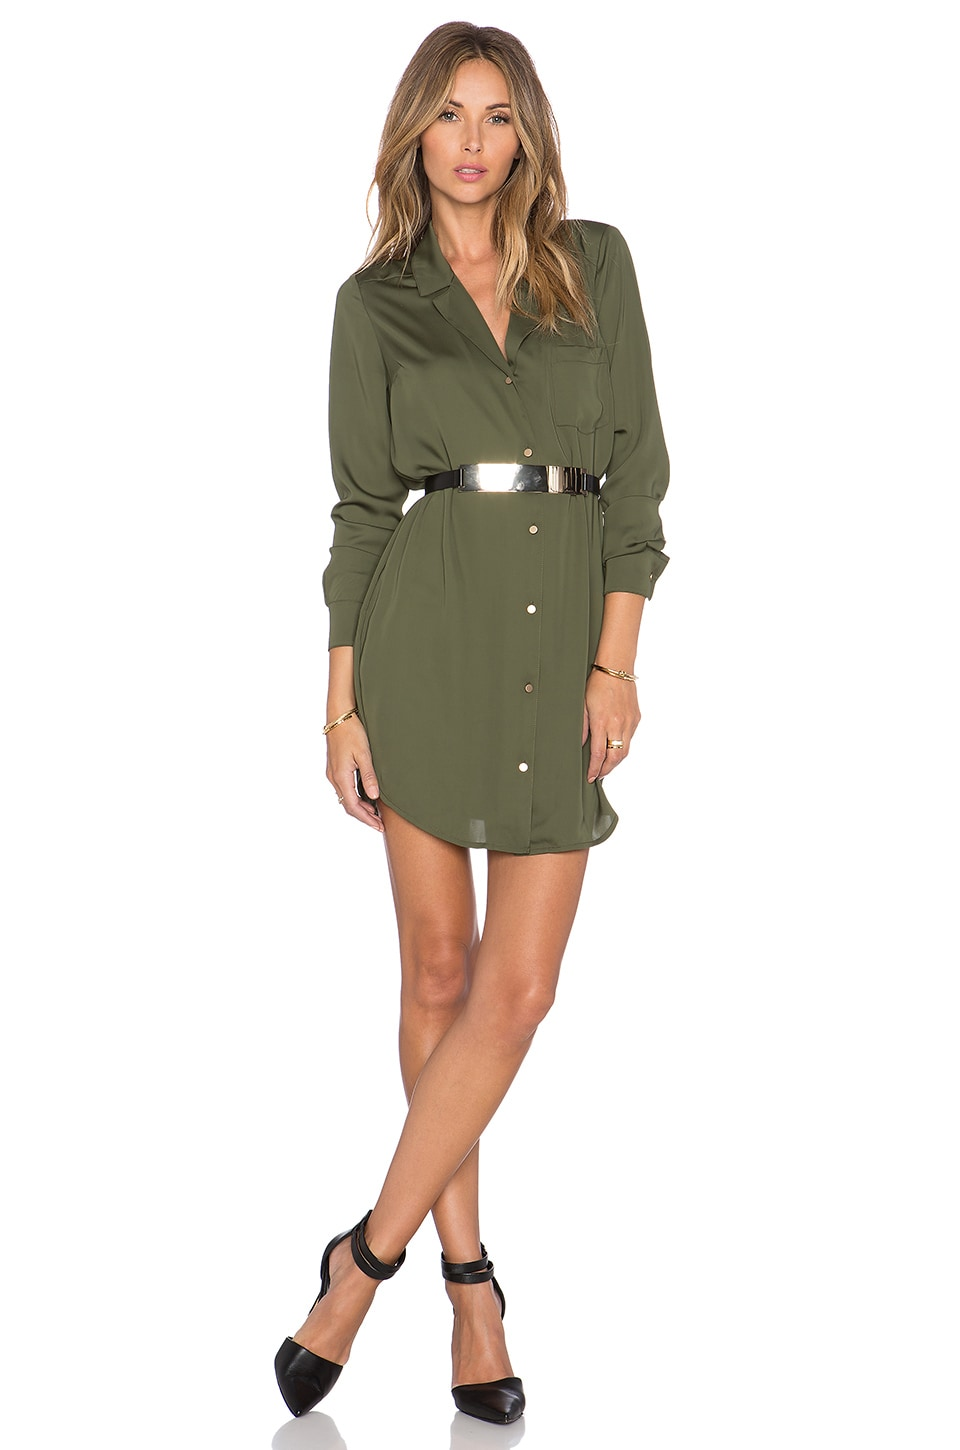 L'Academie The Tunic Dress in Army